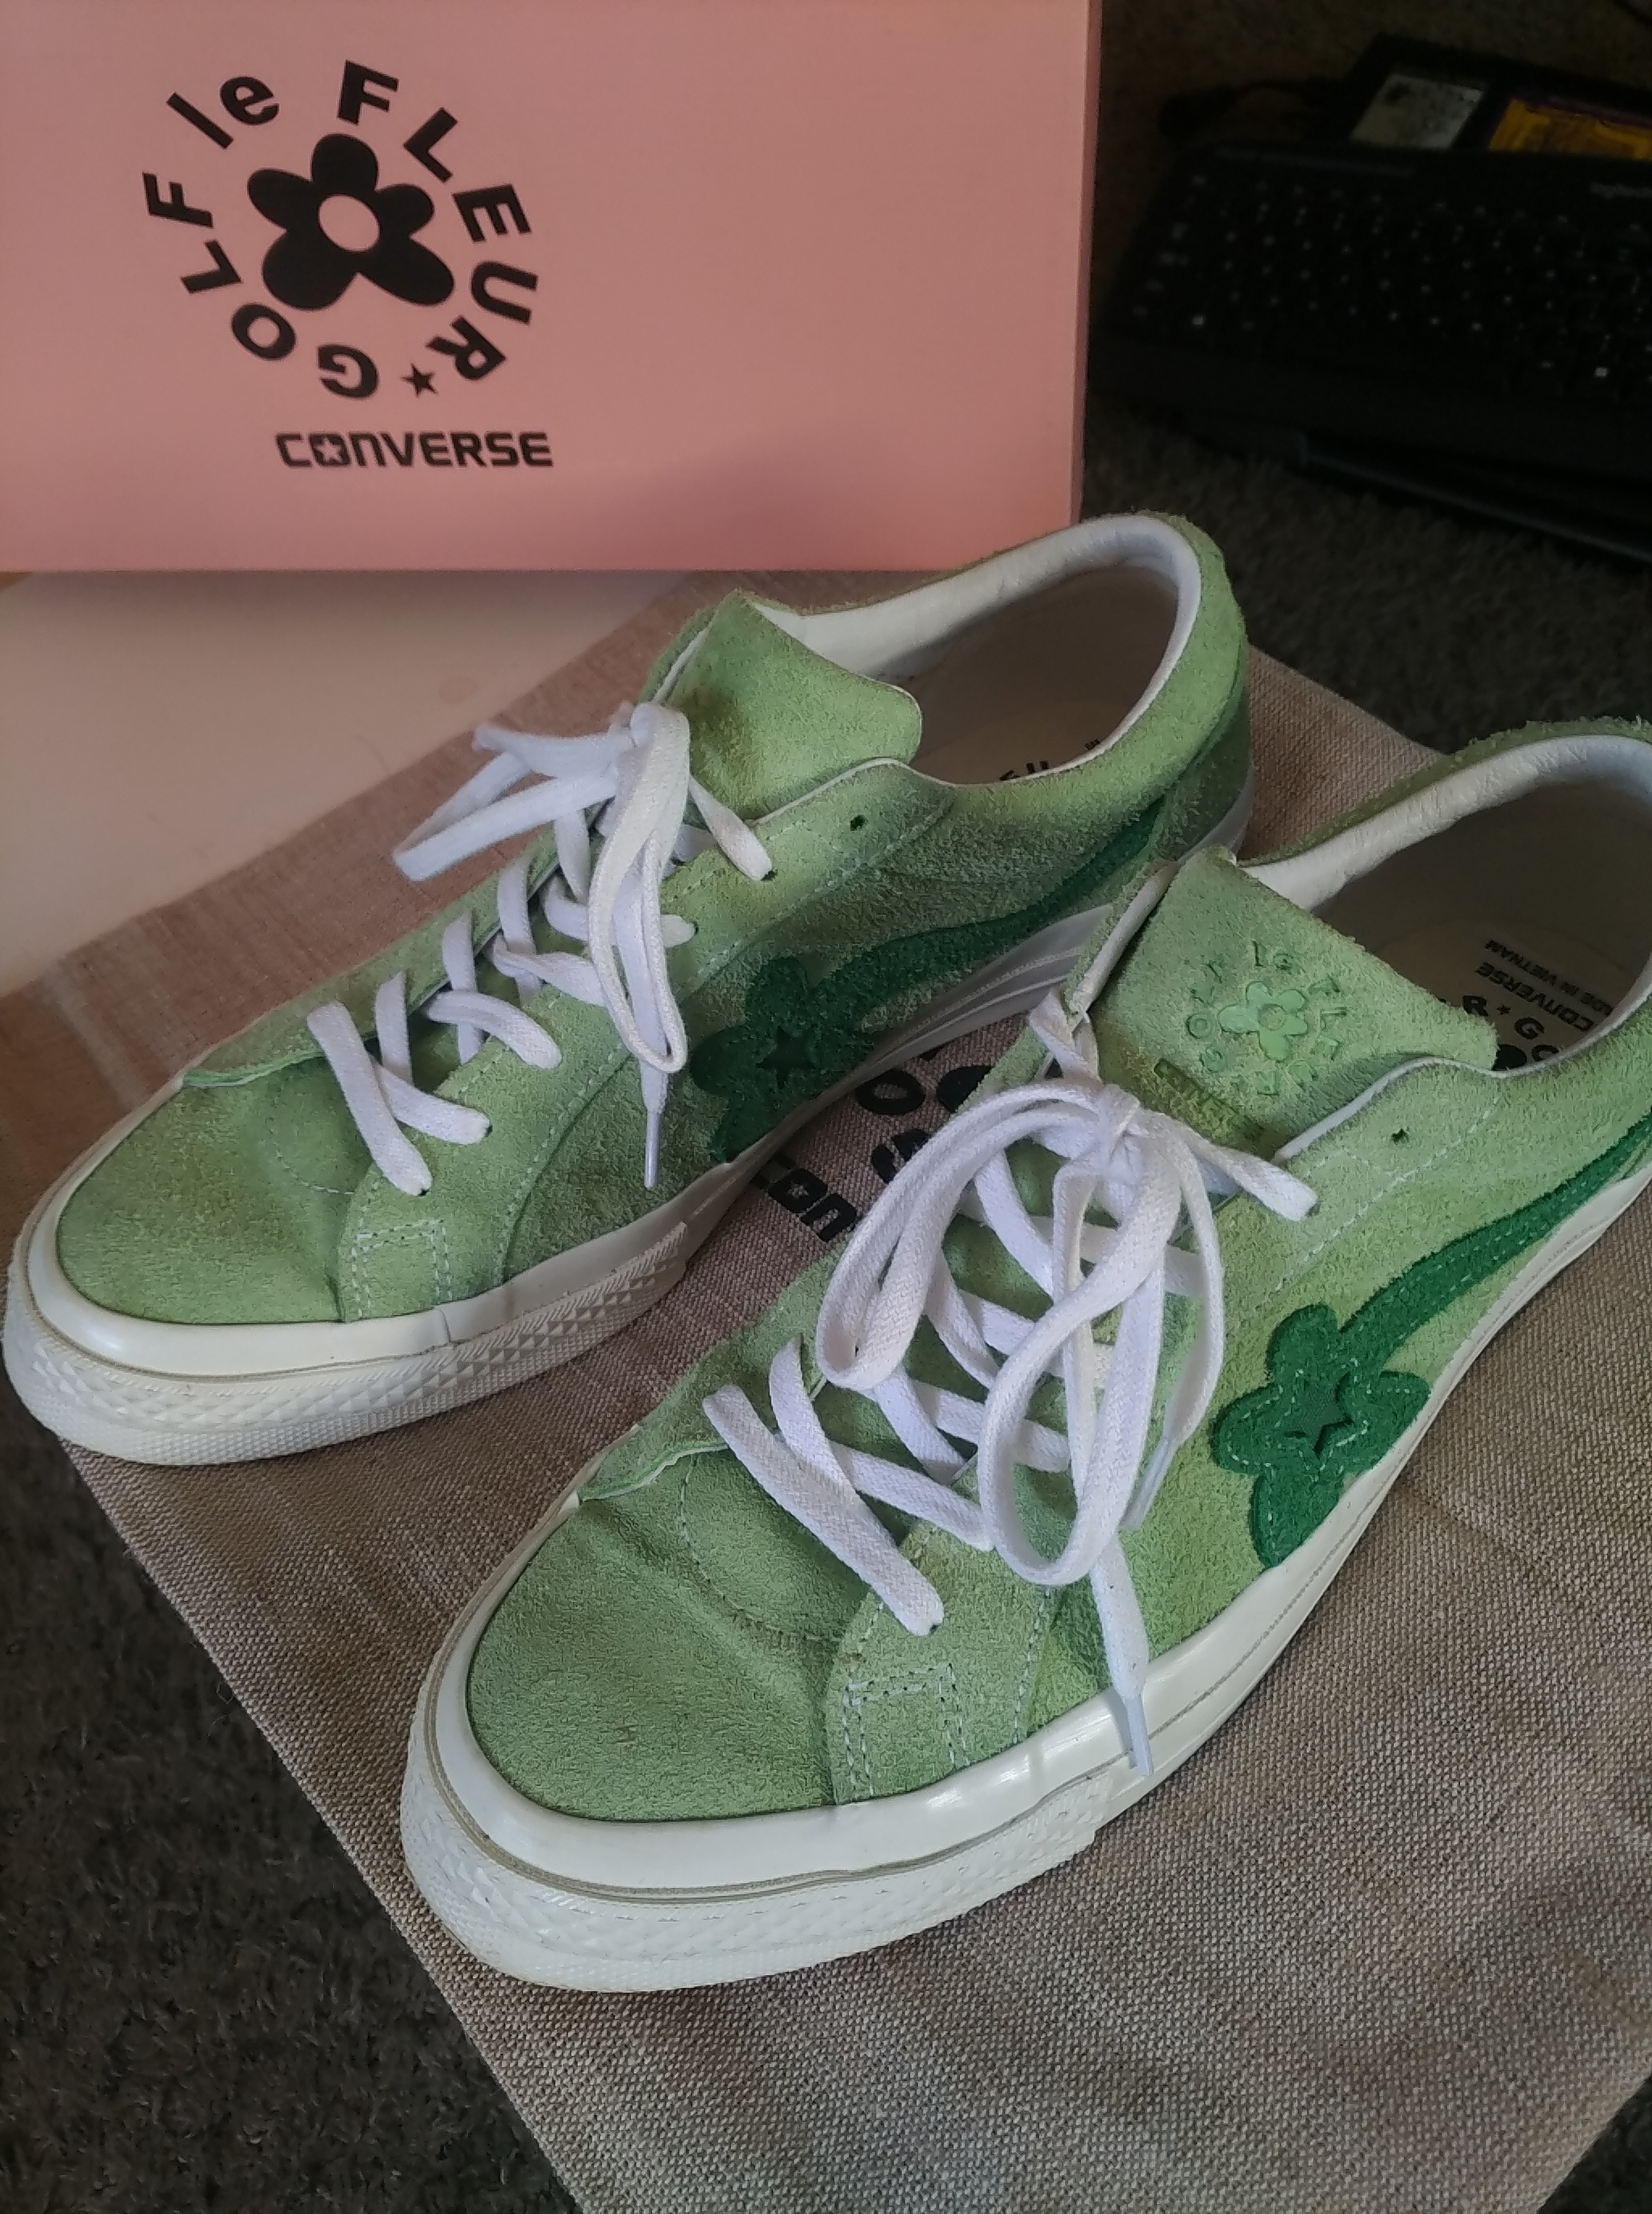 Converse Converse One Star Ox Golf Le Fleur Jade Lime Mint Green Egret Size  12 - Low-Top Sneakers for Sale - Grailed 2da46fc5447